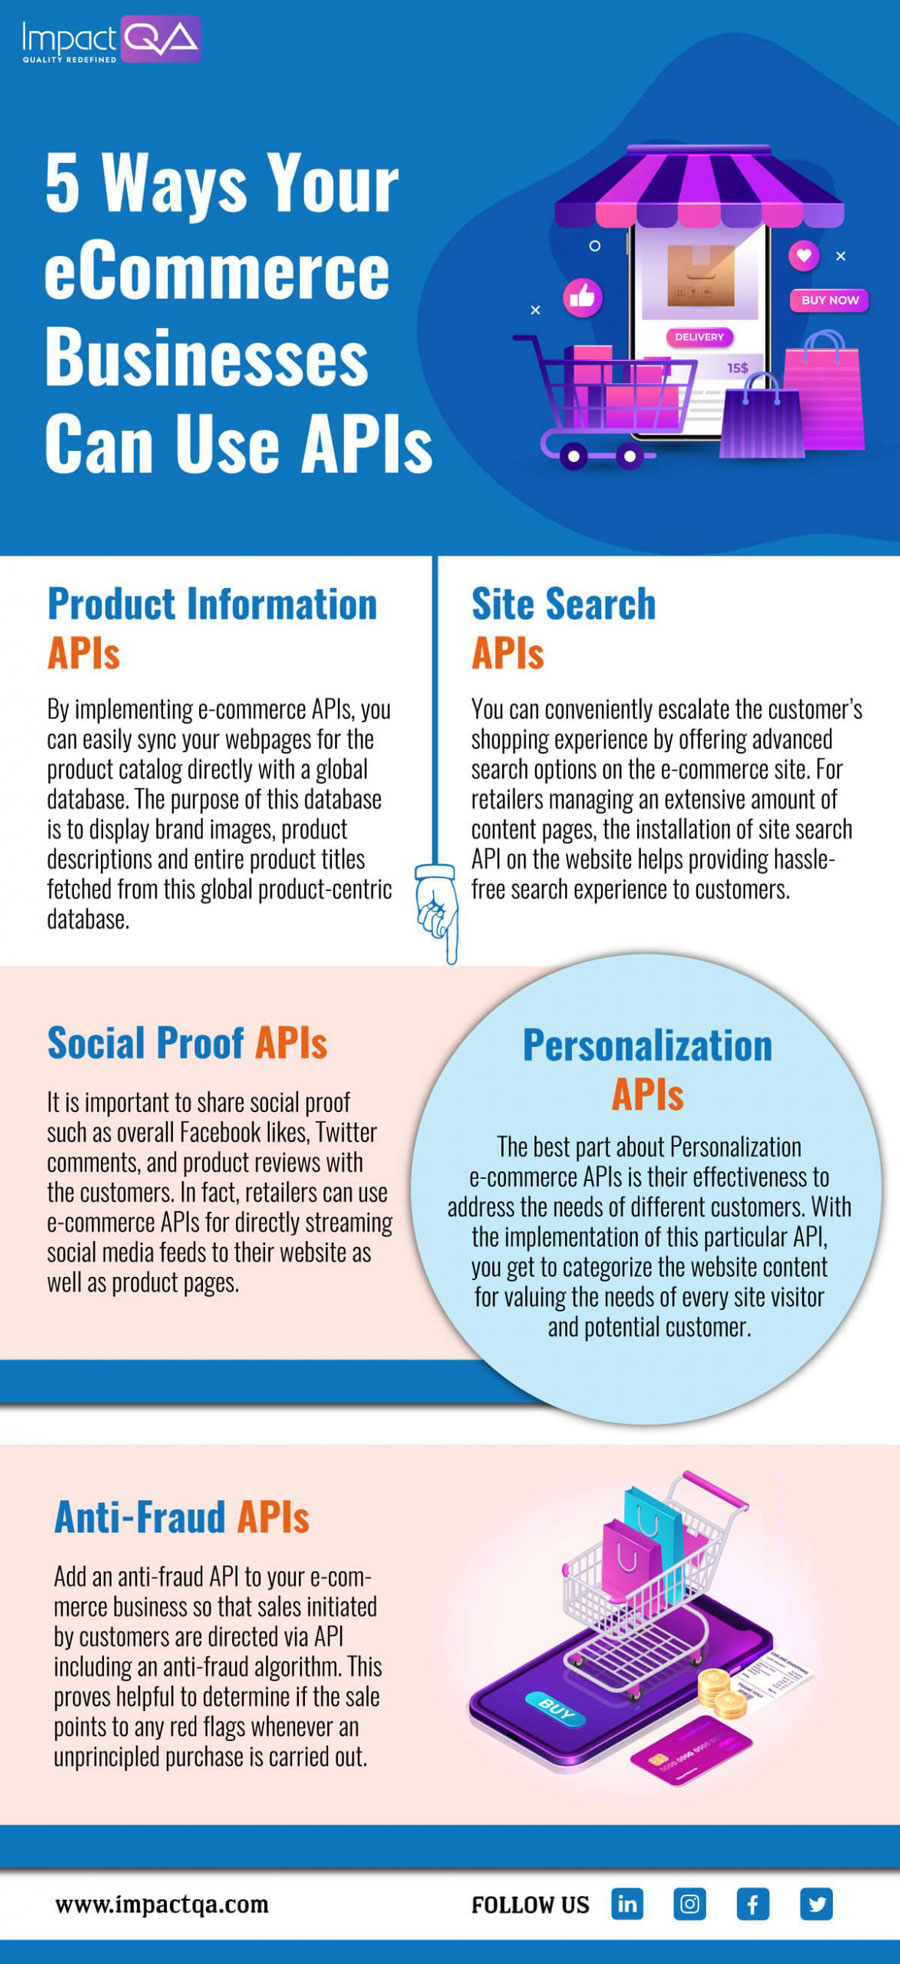 5 way your eCommerce businesses can us APIs